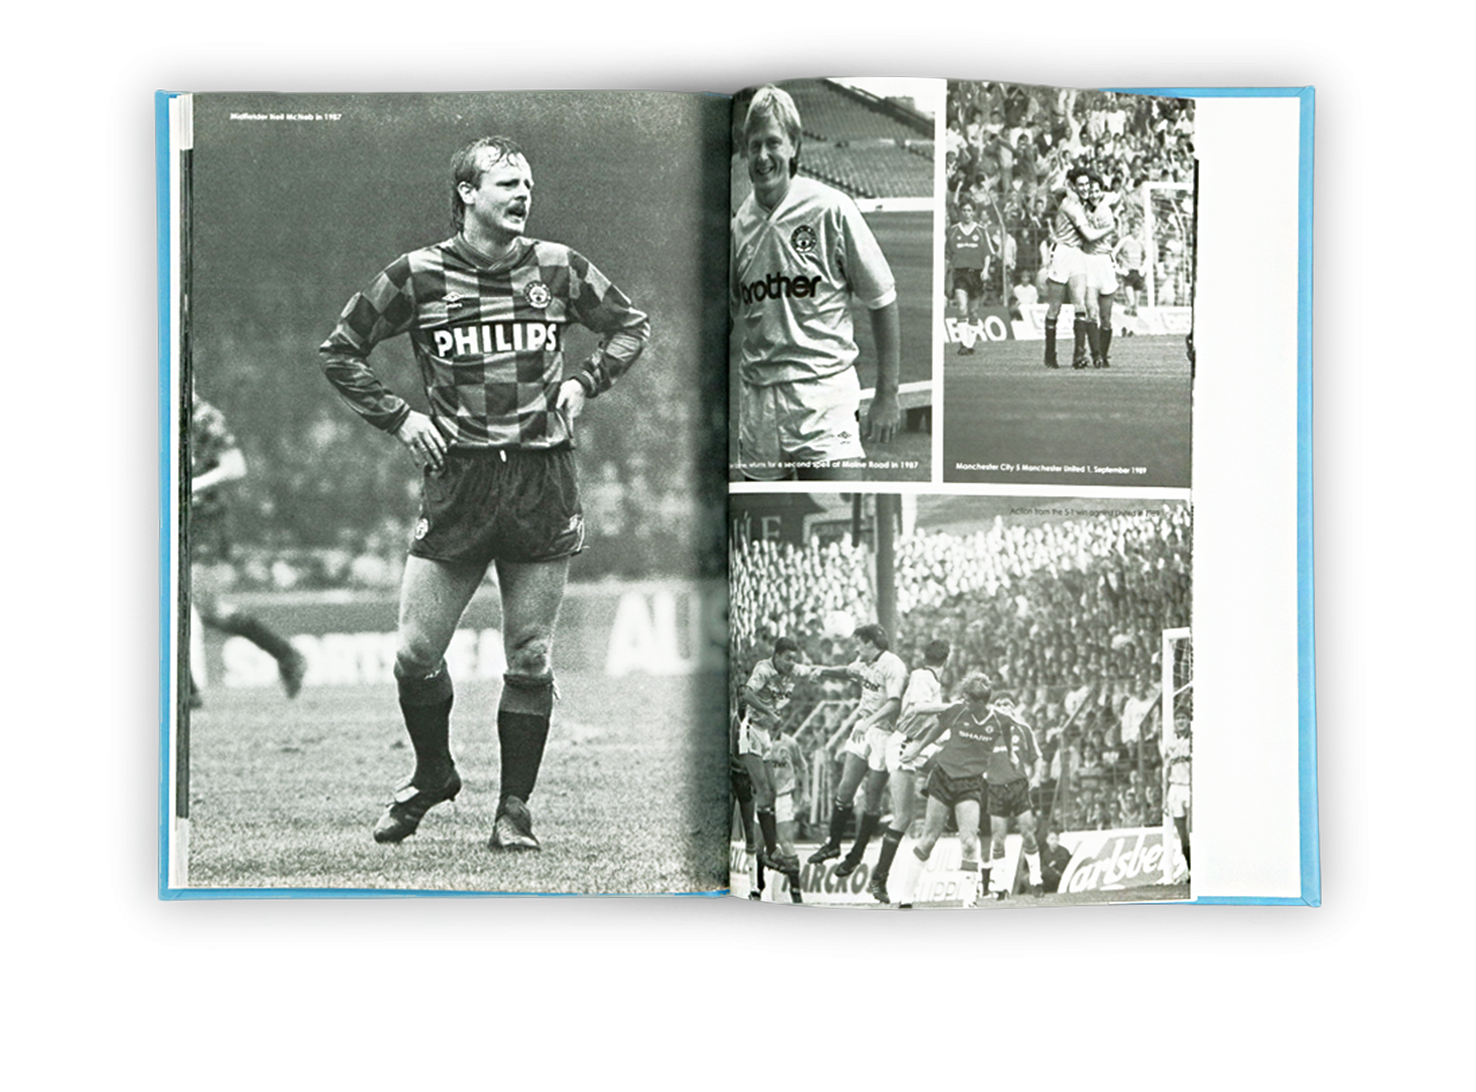 Football pictures history book